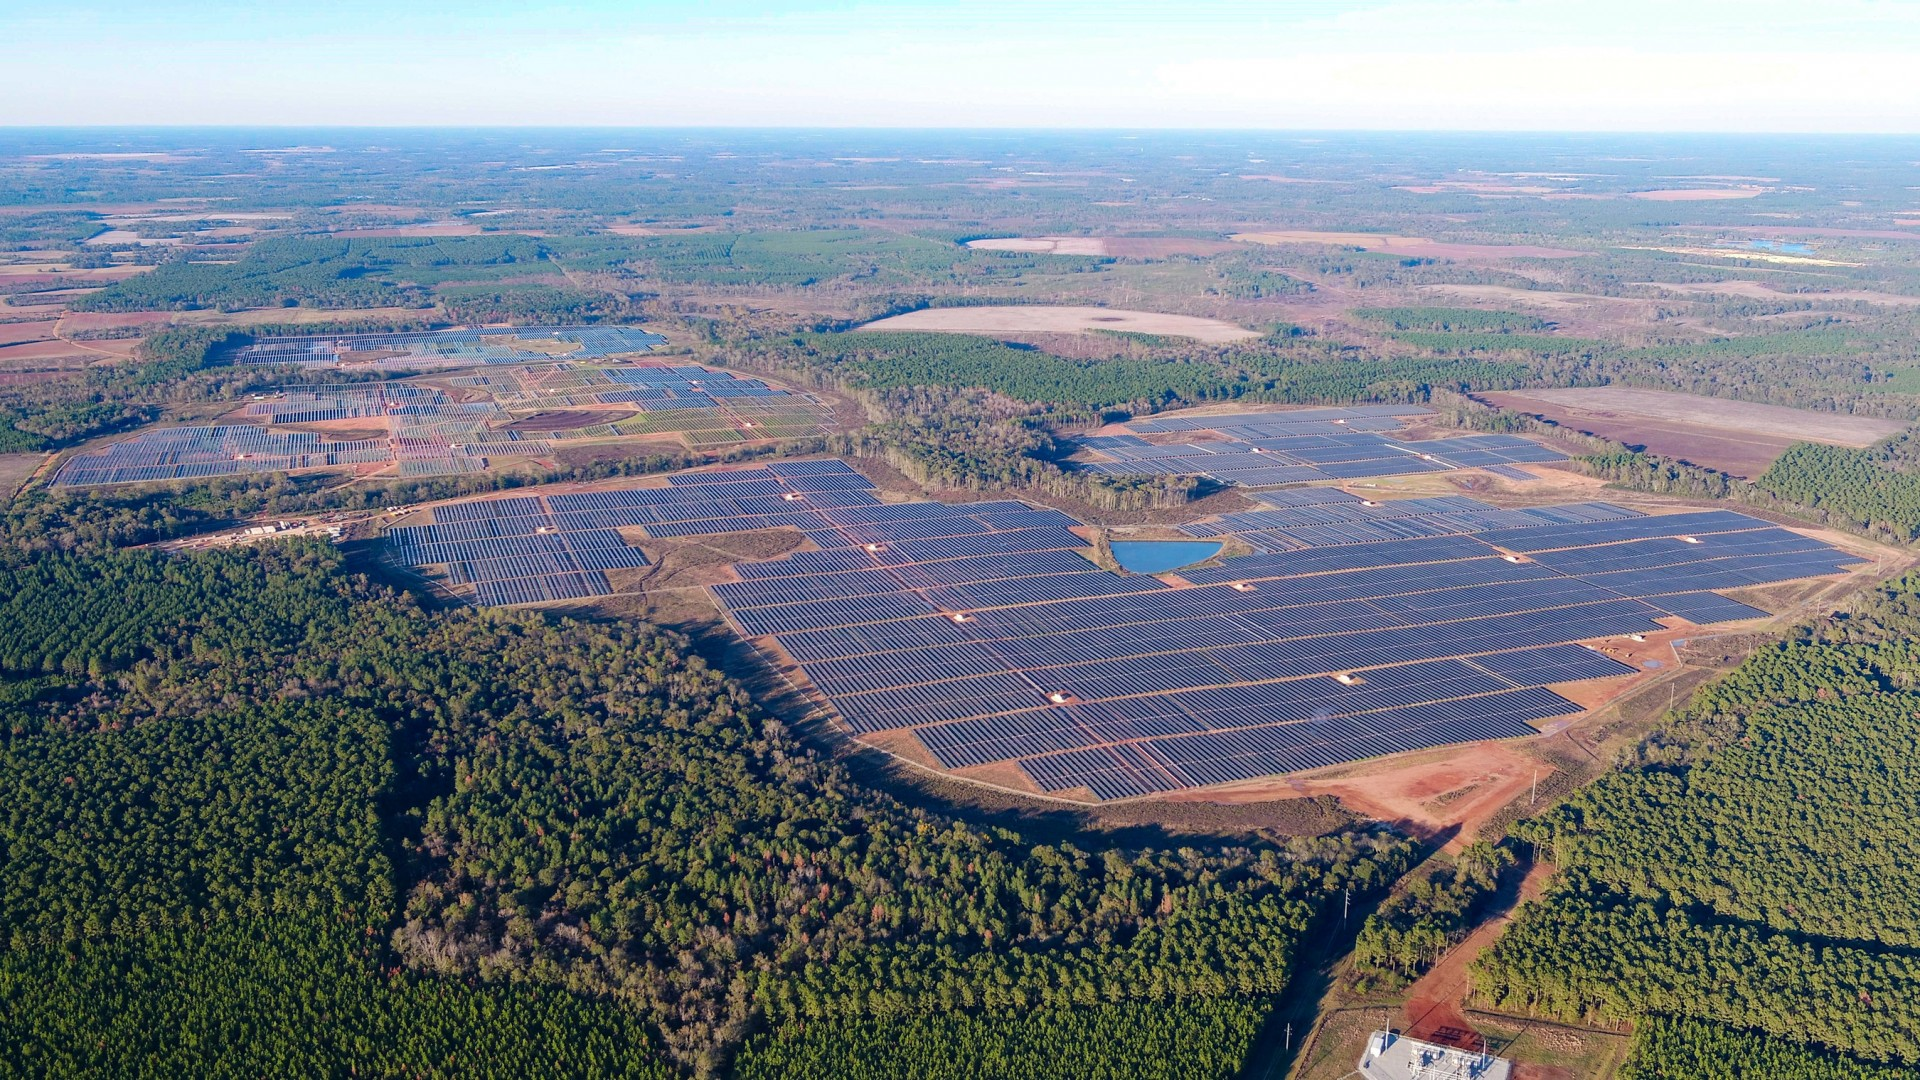 Facebook's 102.5MW project in Georgia is comprised of more than 350,000 solar modules located over 485 hectares of land. These modules were some of the first produced by  Hanwha Q CELLS at its new manufacturing facility in Whitfield County, Georgia. Image: Walton EMC